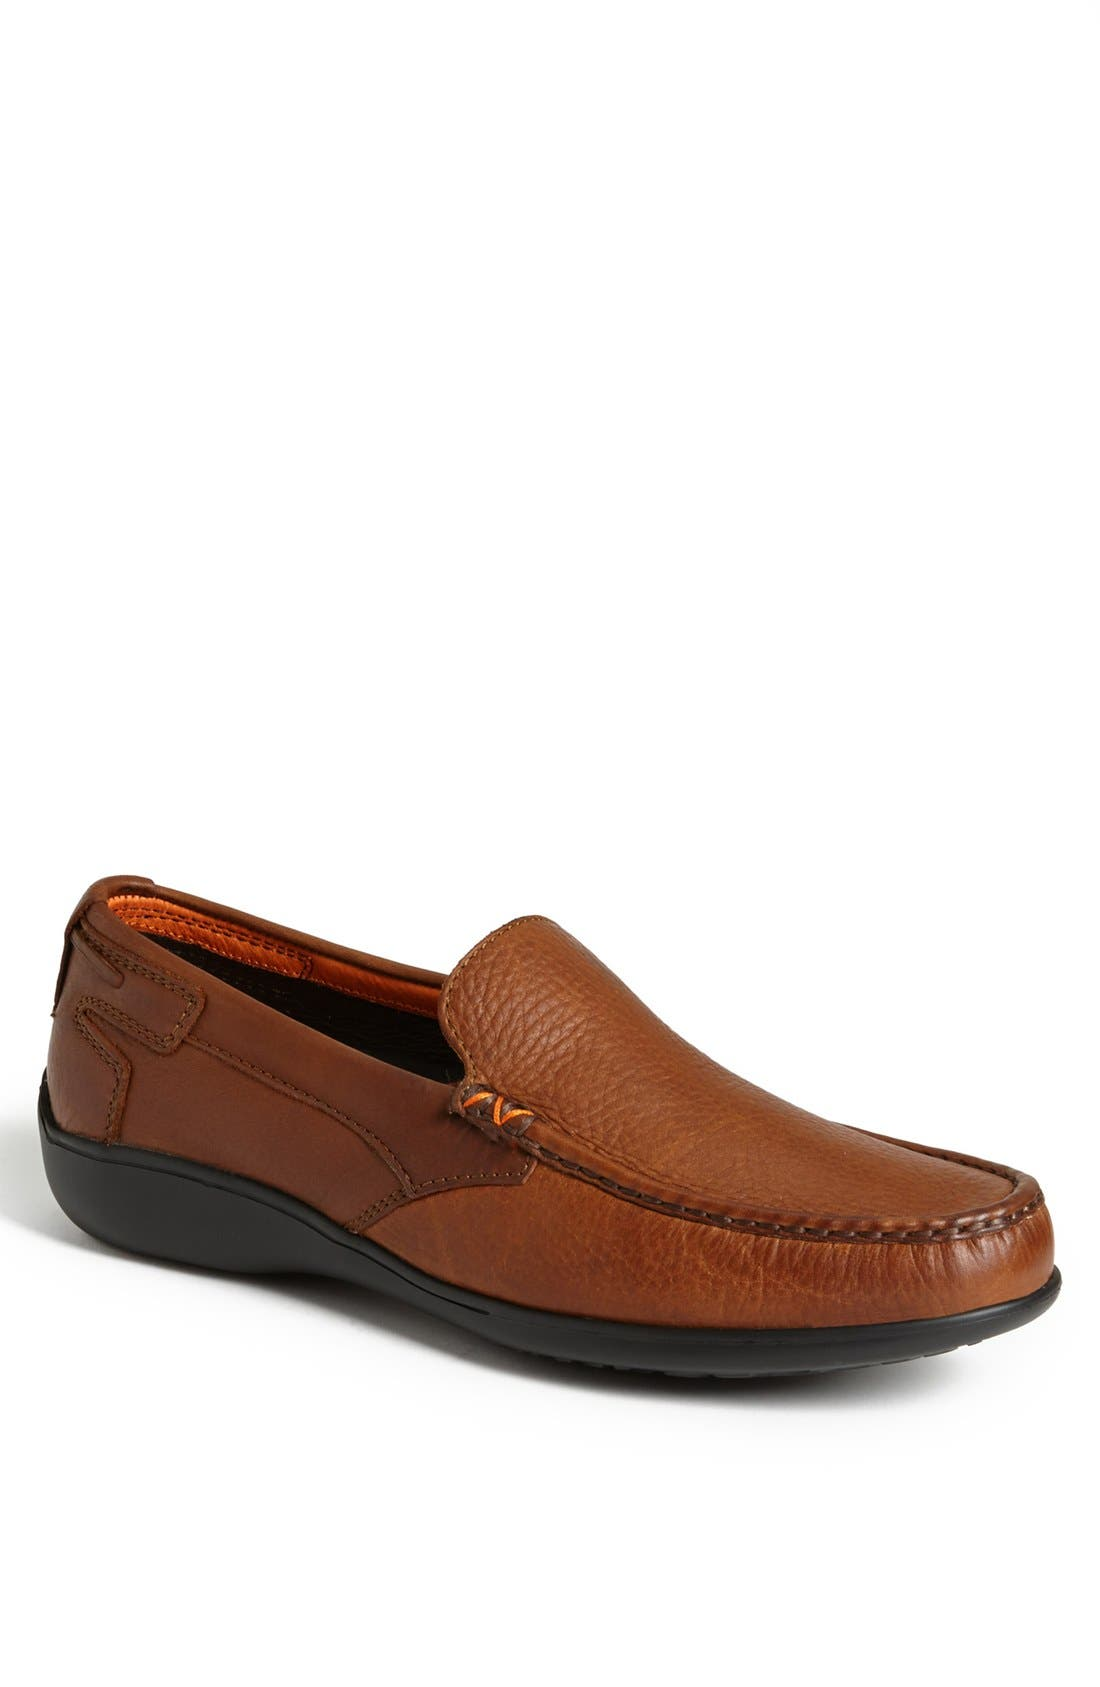 Neil M 'Sterling' Loafer